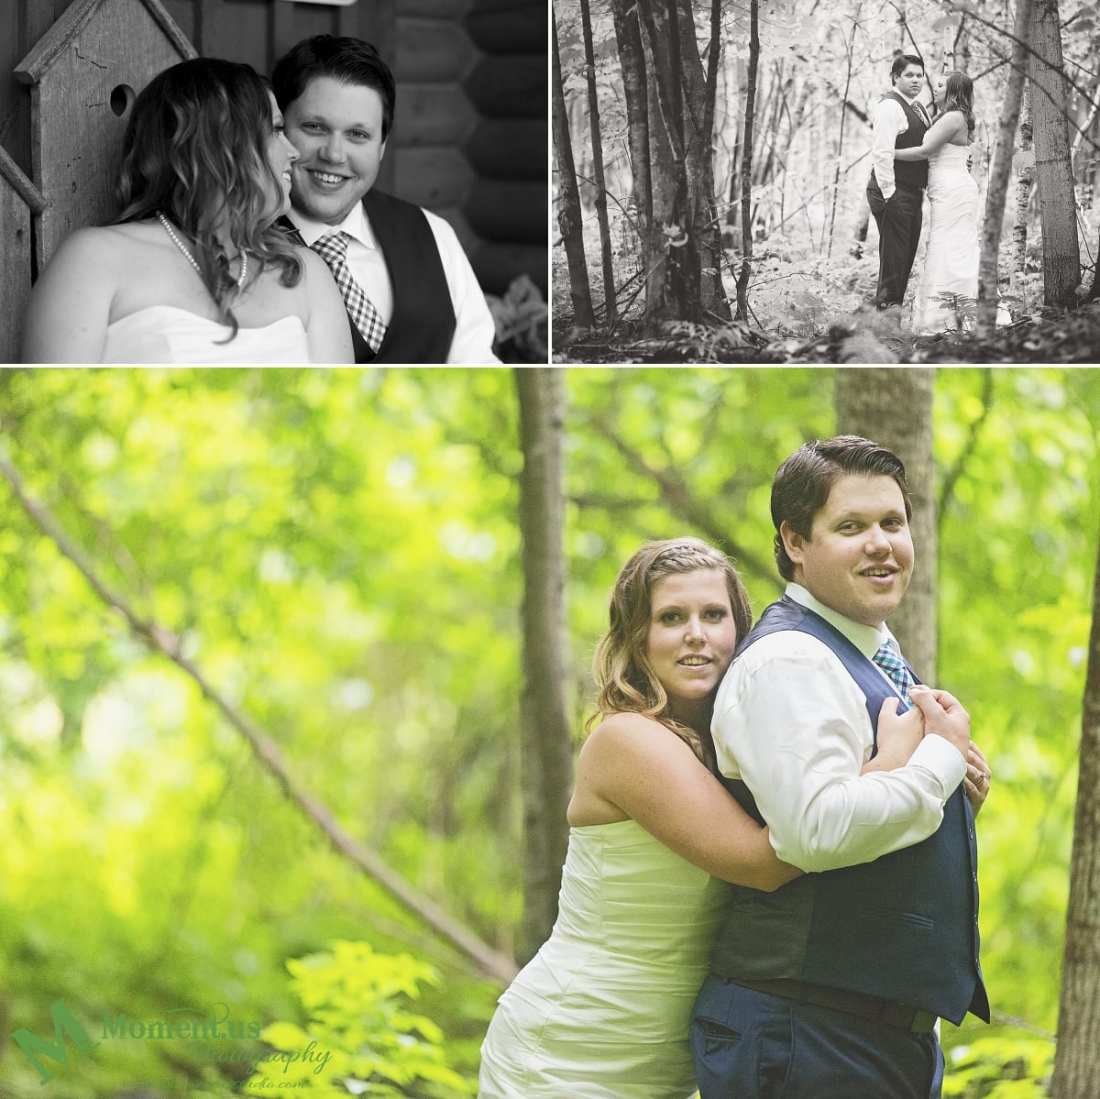 rustic country wedding photos - bride and groom in forest